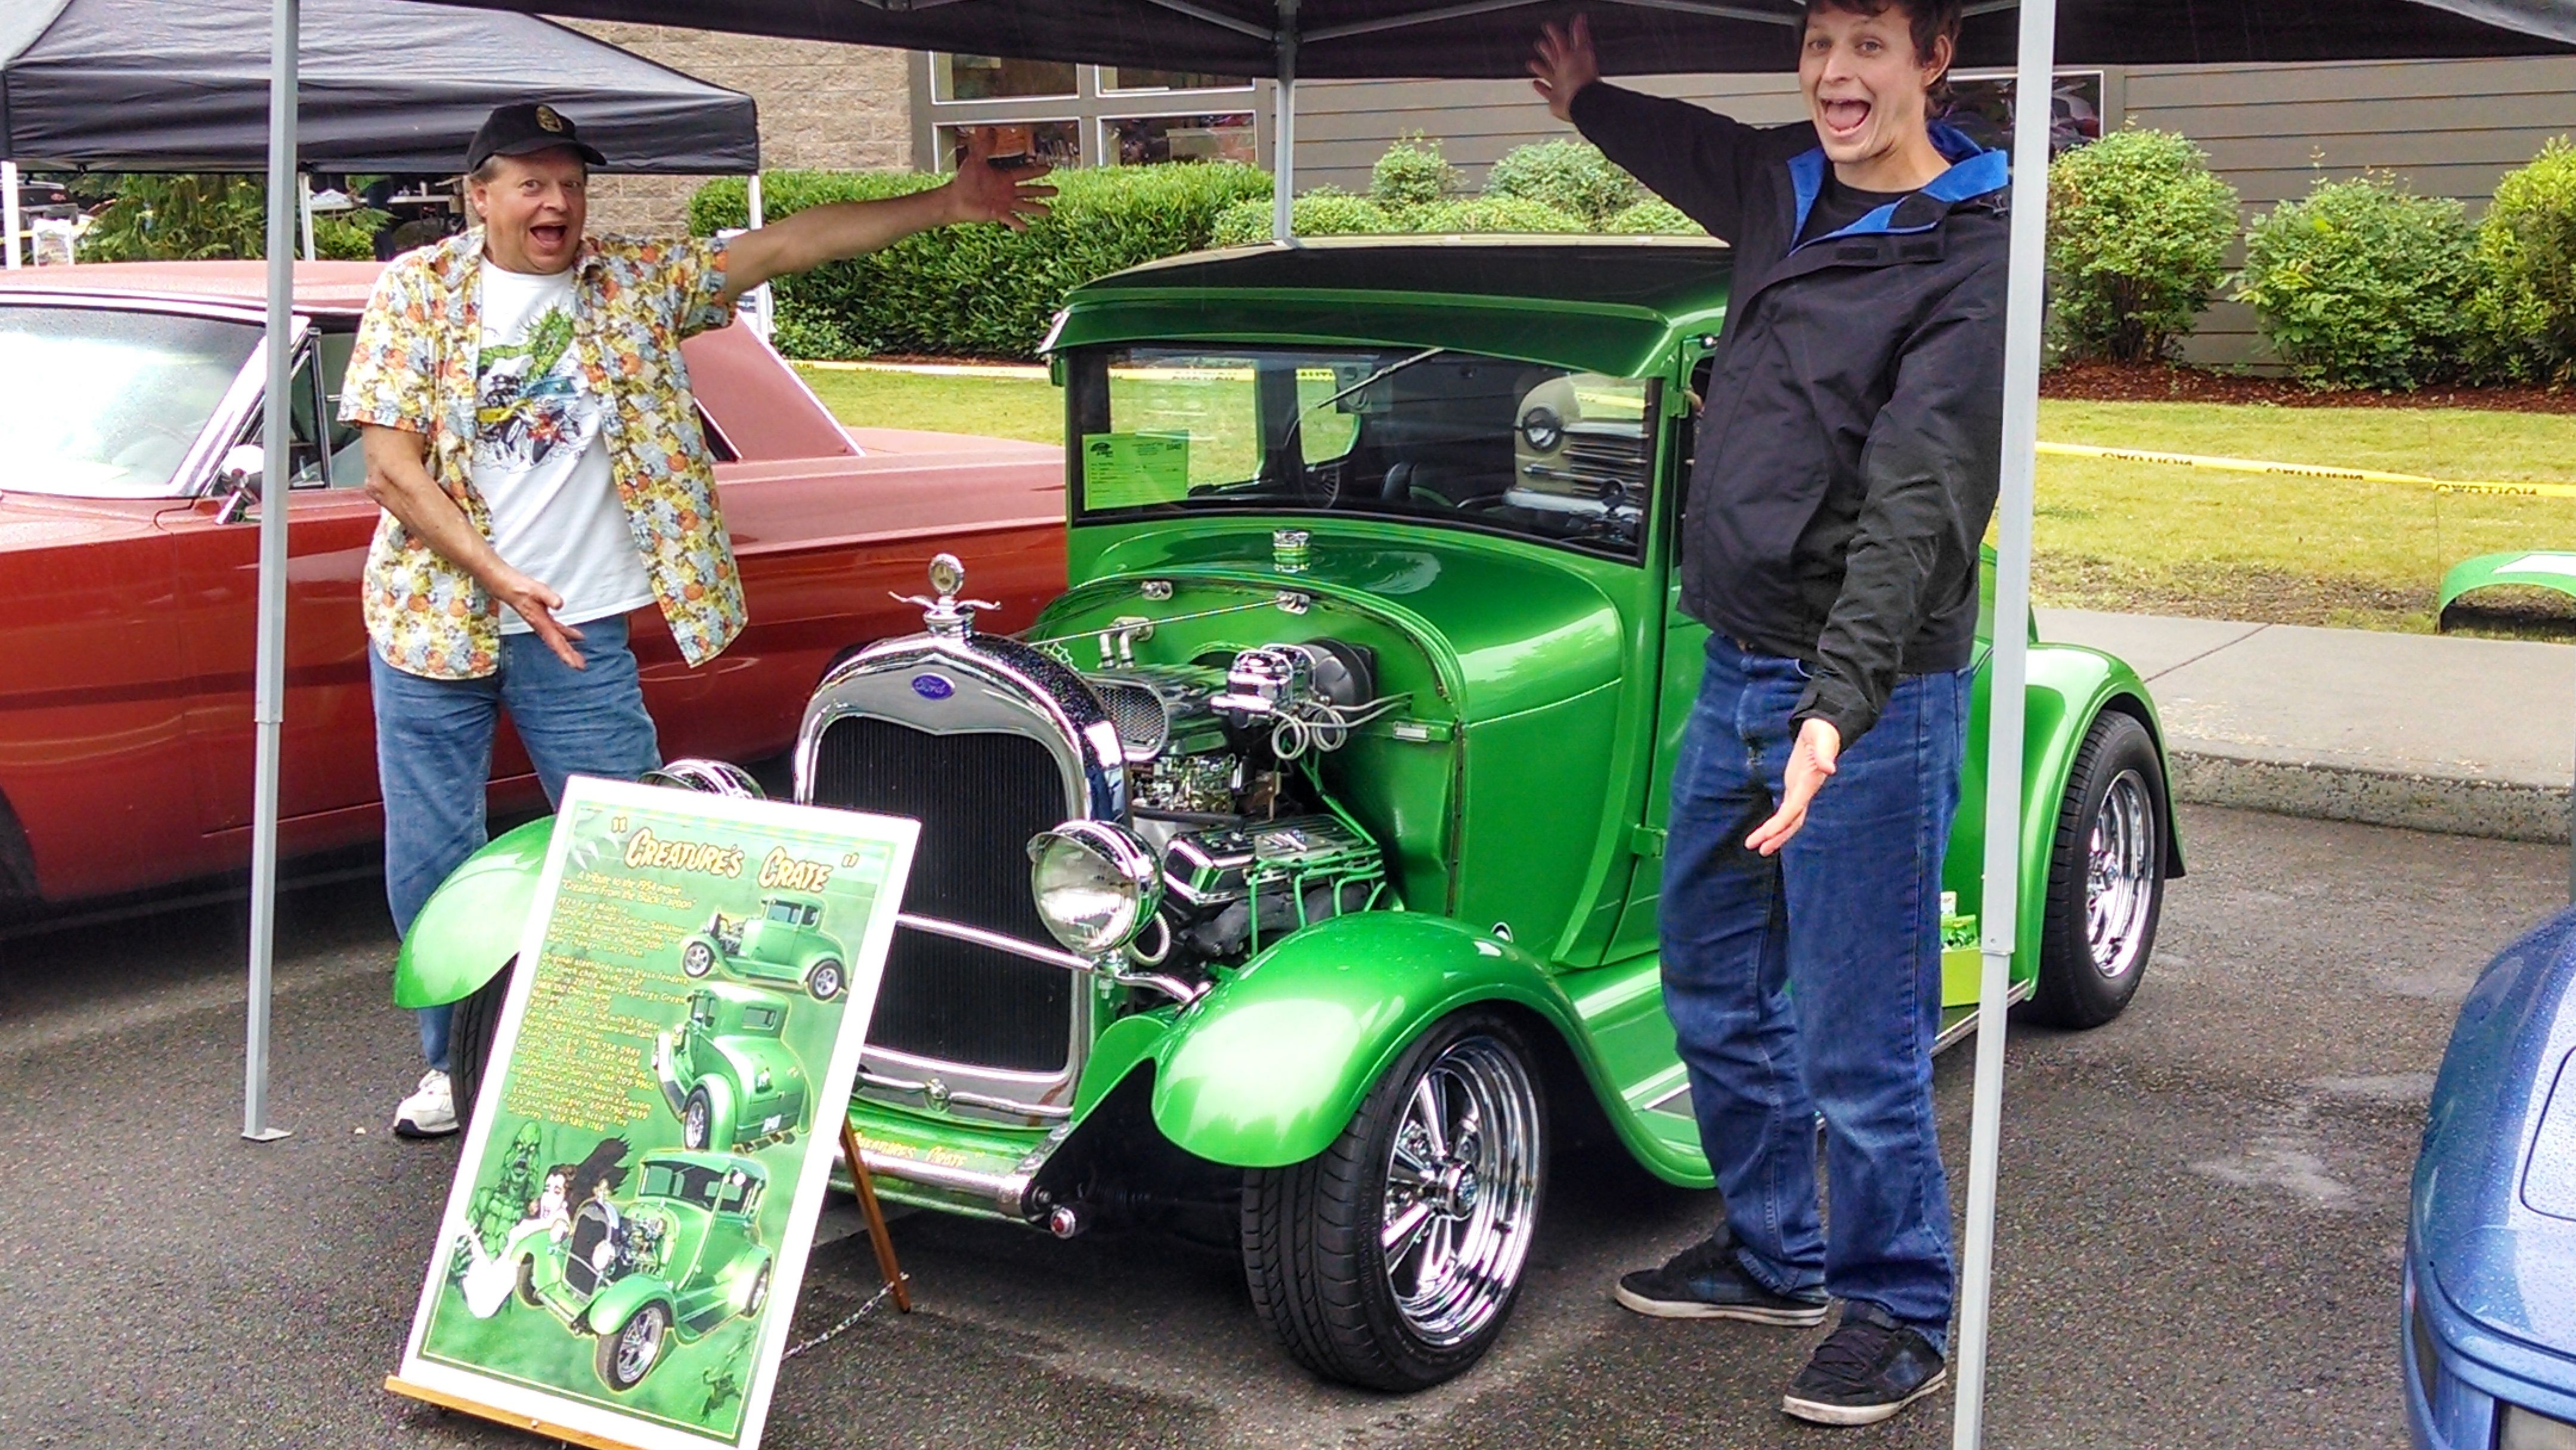 At The Maltby Hogs And Rods Car Show In Washington State Hot - Car shows in washington state